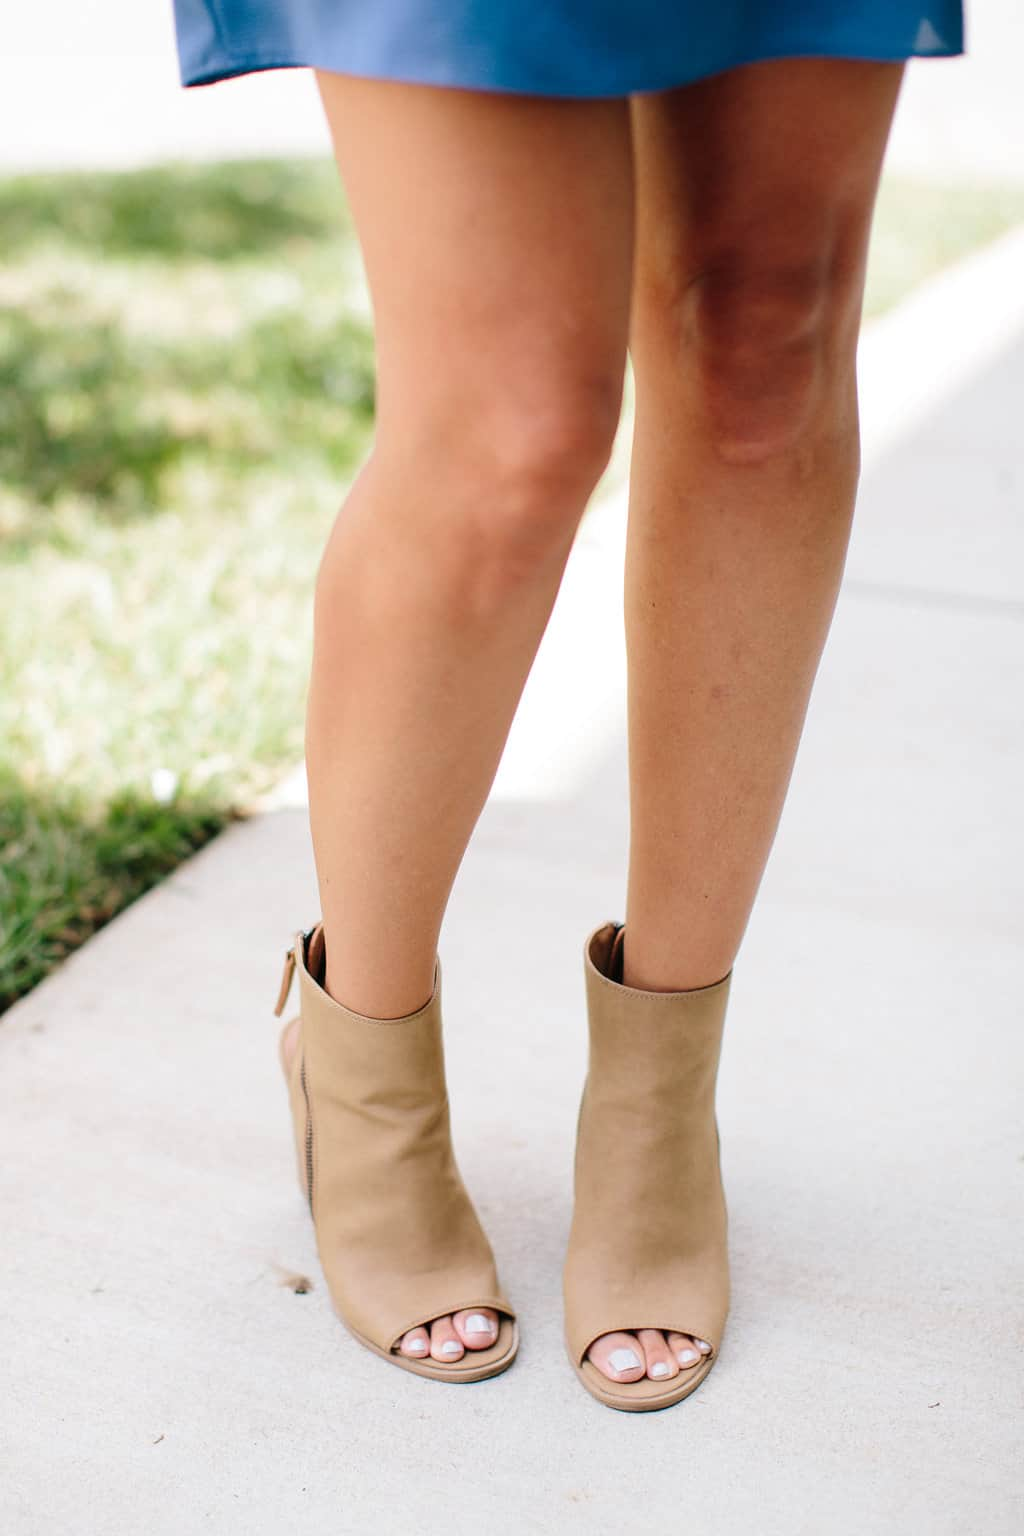 Simple-Shift-Dress-For-All-Occasions-peeptoe-booties